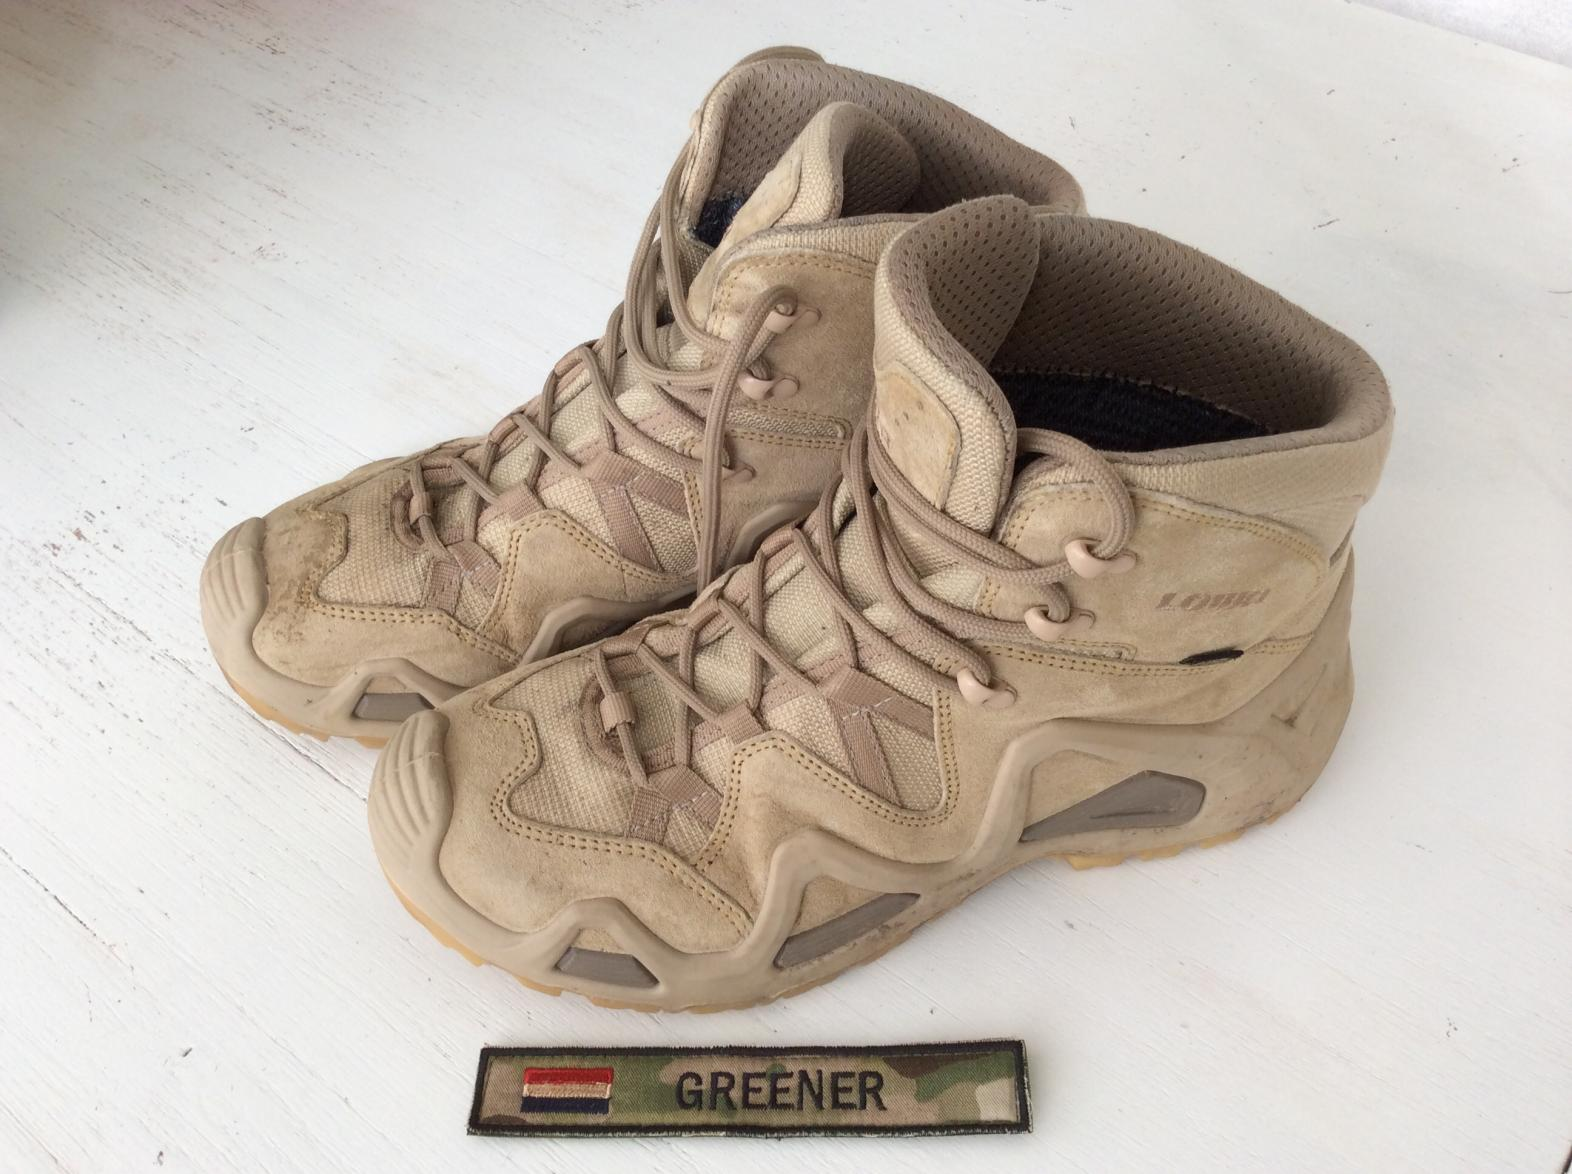 Review] Lowa Zephyr GTX mid Reviews Preppers.nl Forum